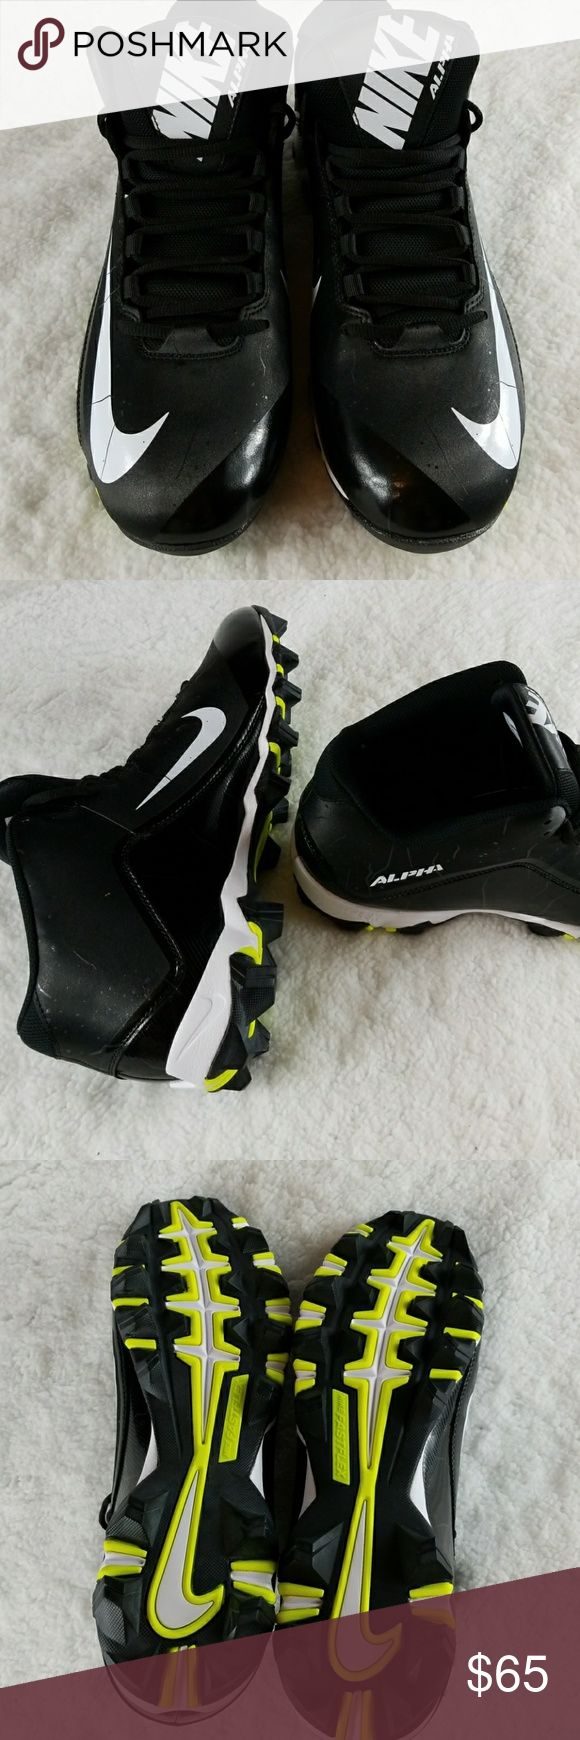 NIKE Alpha FastFlex black & white football cleats New without box or tags! [A1S] Never been worn. Nike Shoes Athletic Shoes